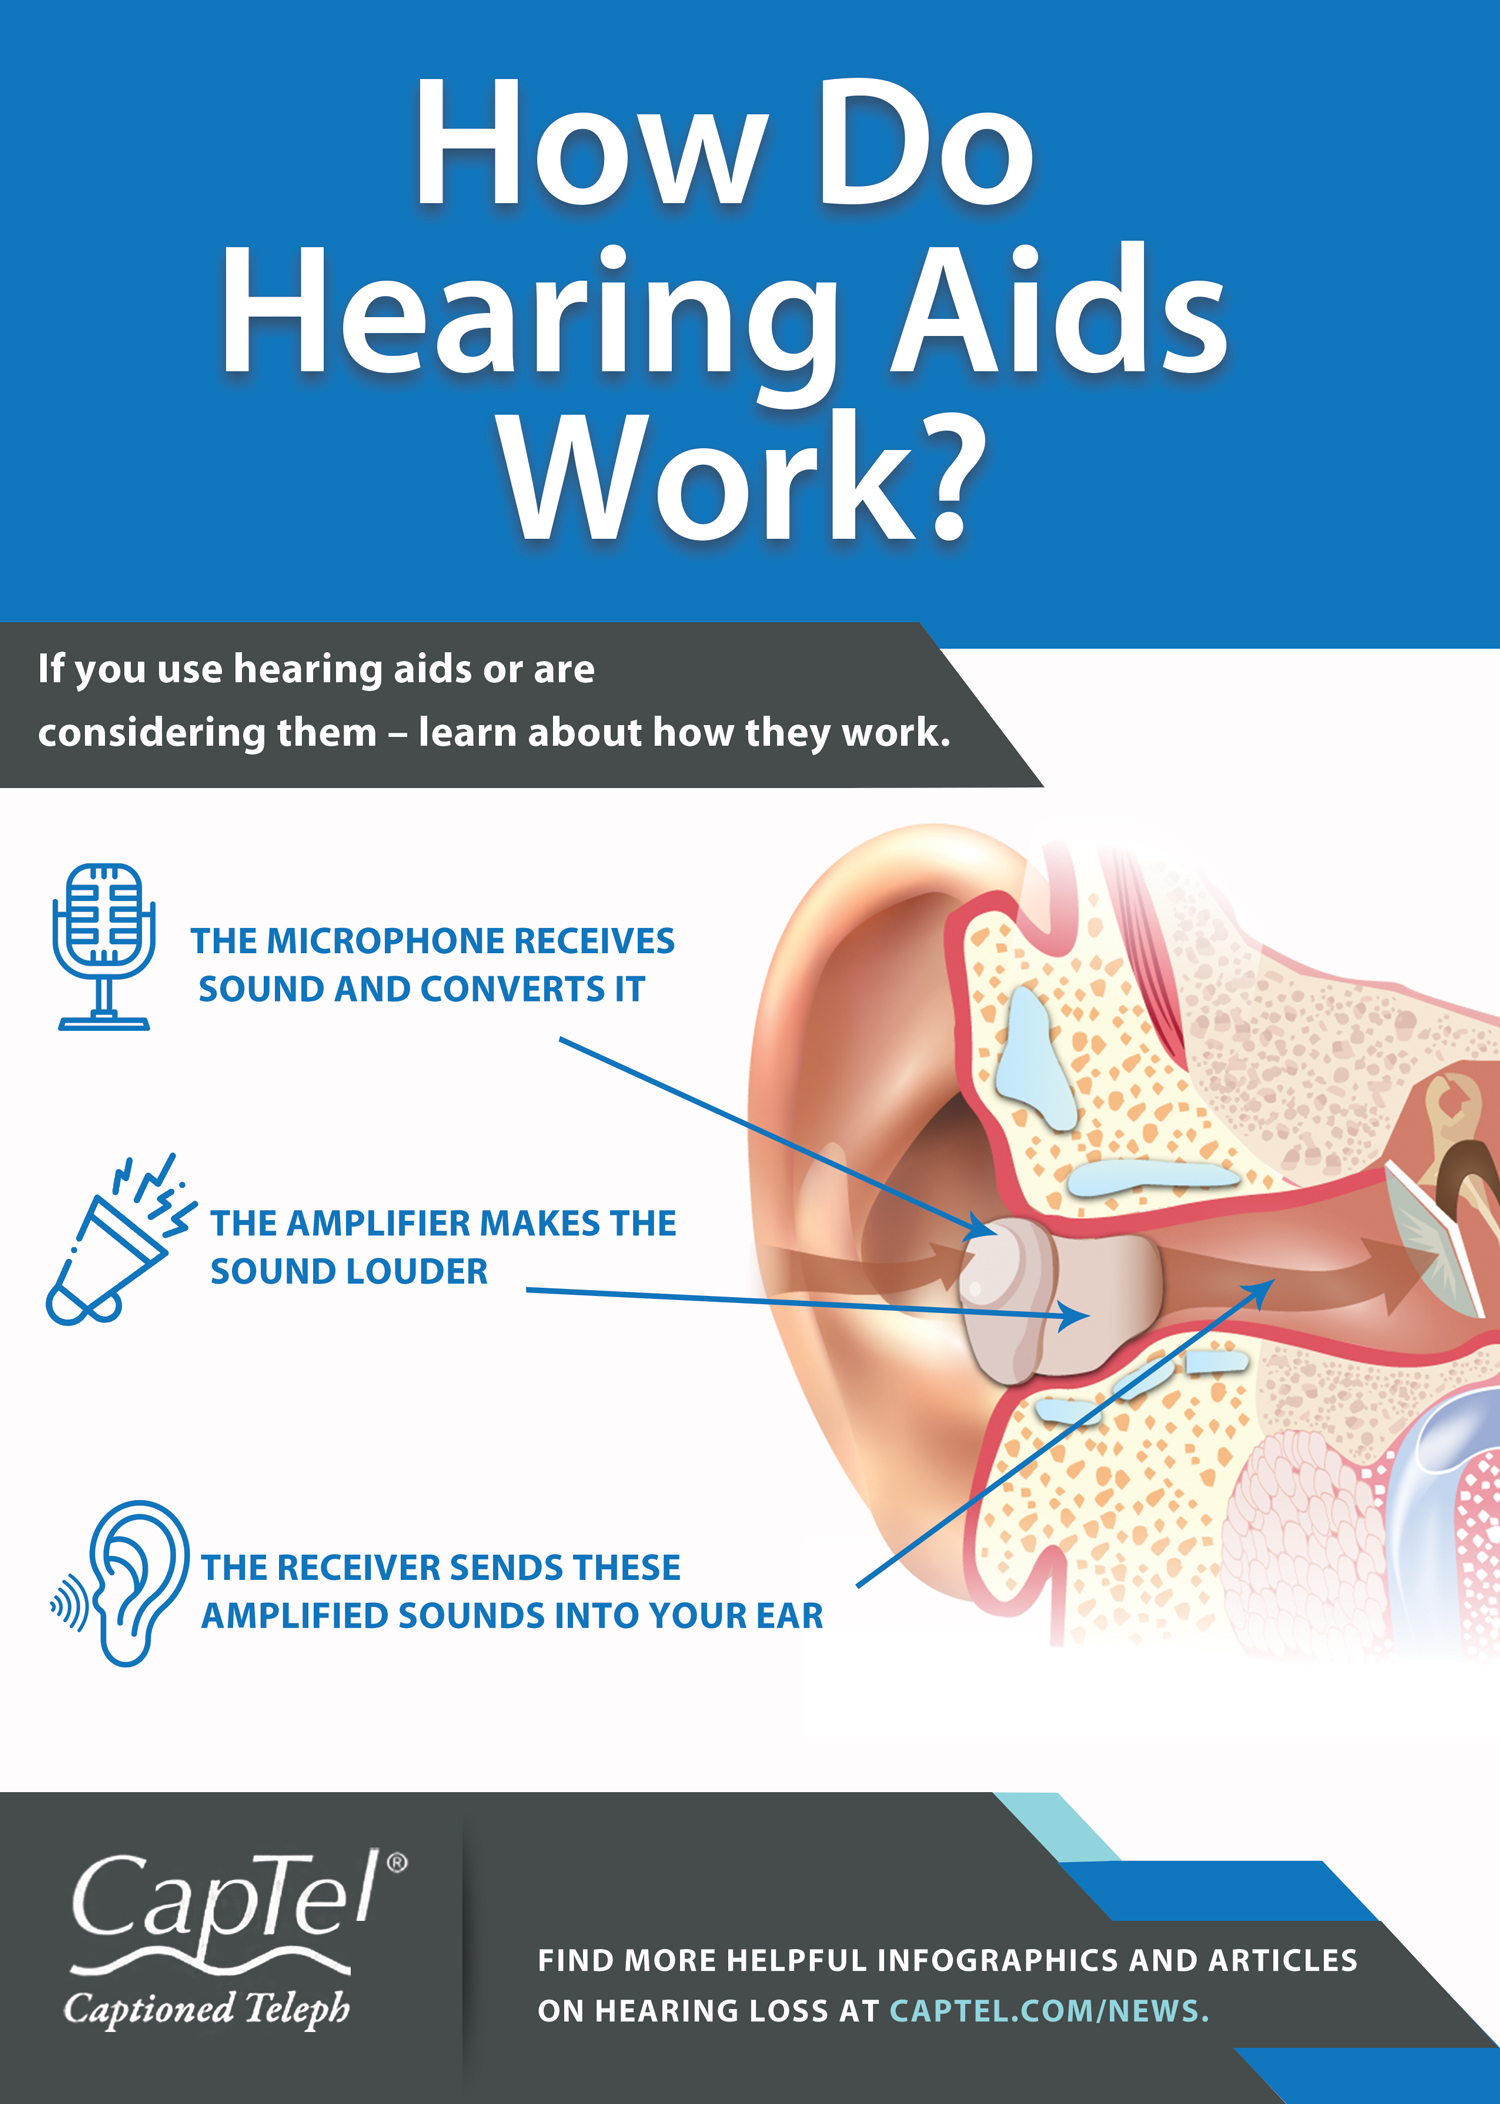 This infographic explores how hearing aids work.